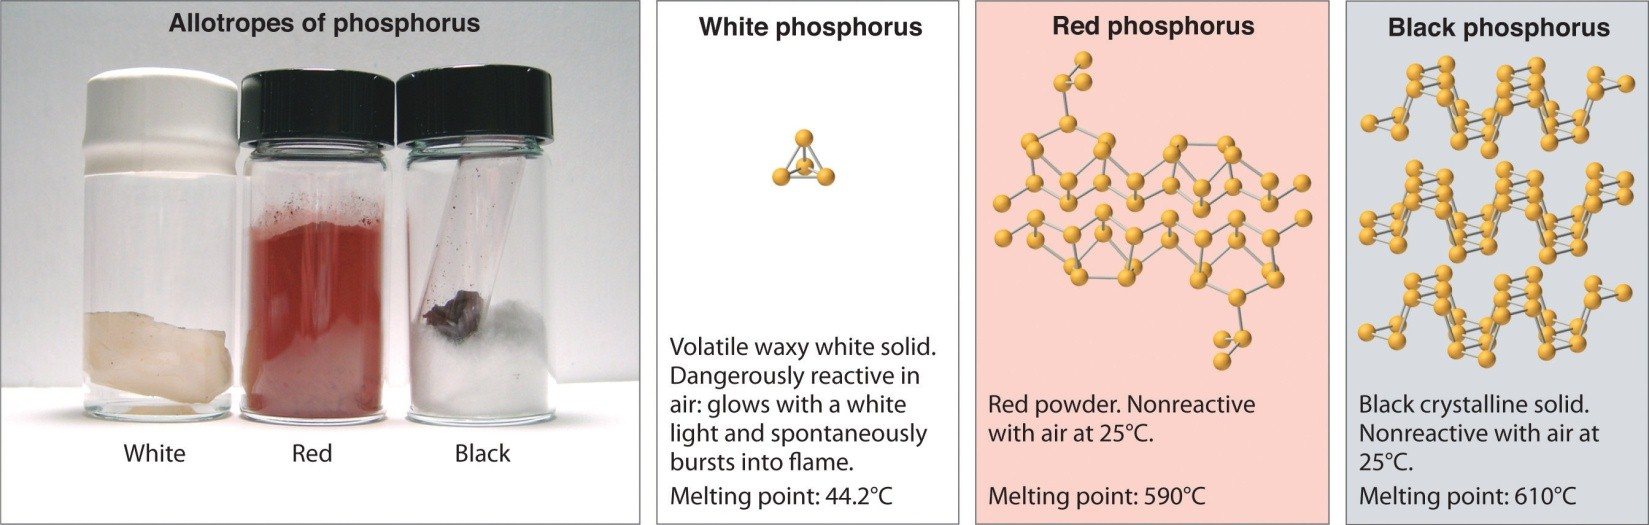 Allotropes of Phosphorus with physical properties